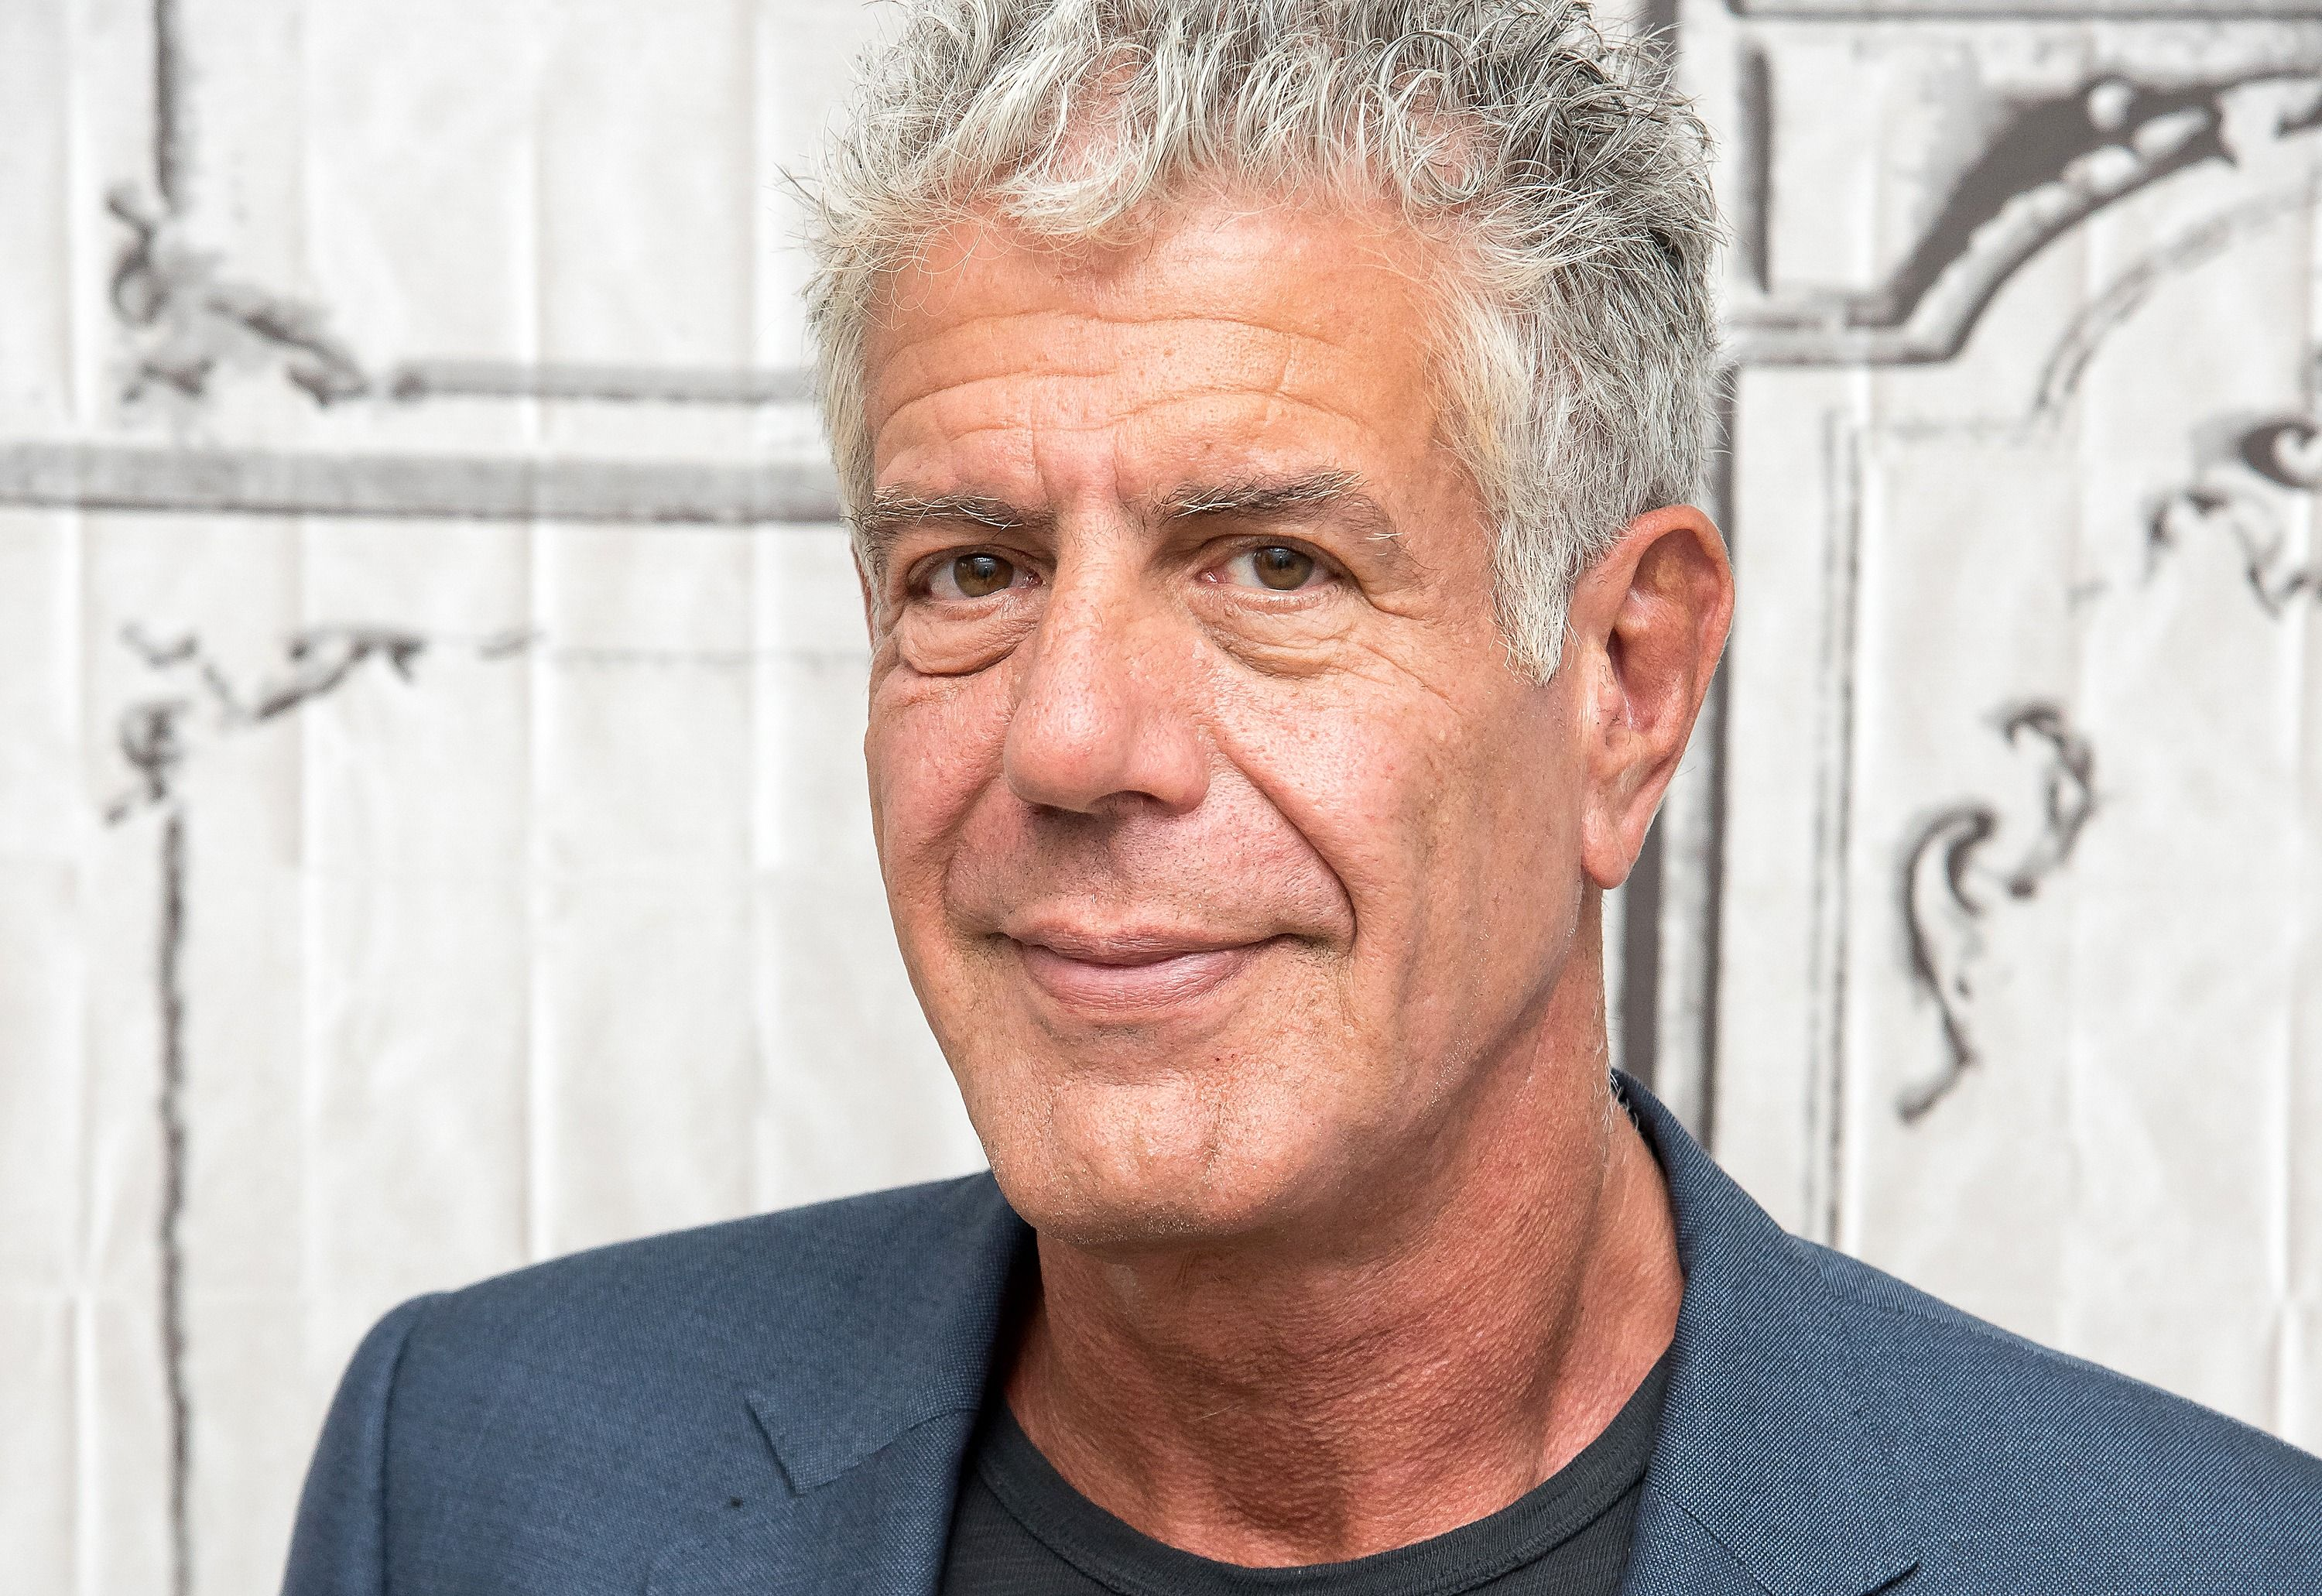 Anthony Bourdain's World Travel: An Irreverent Guide Is Set For Release This Autumn